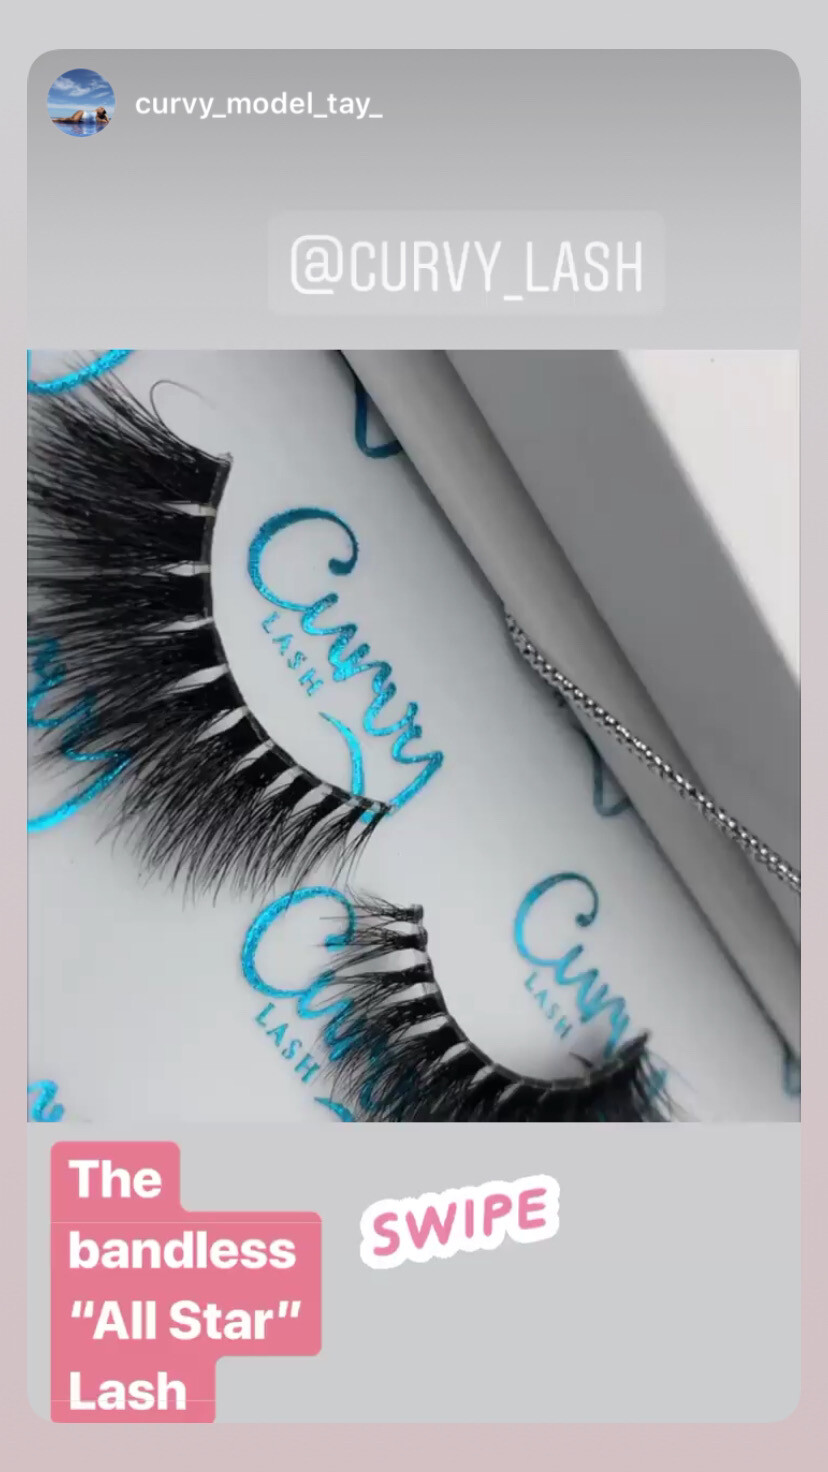 All Star Lash